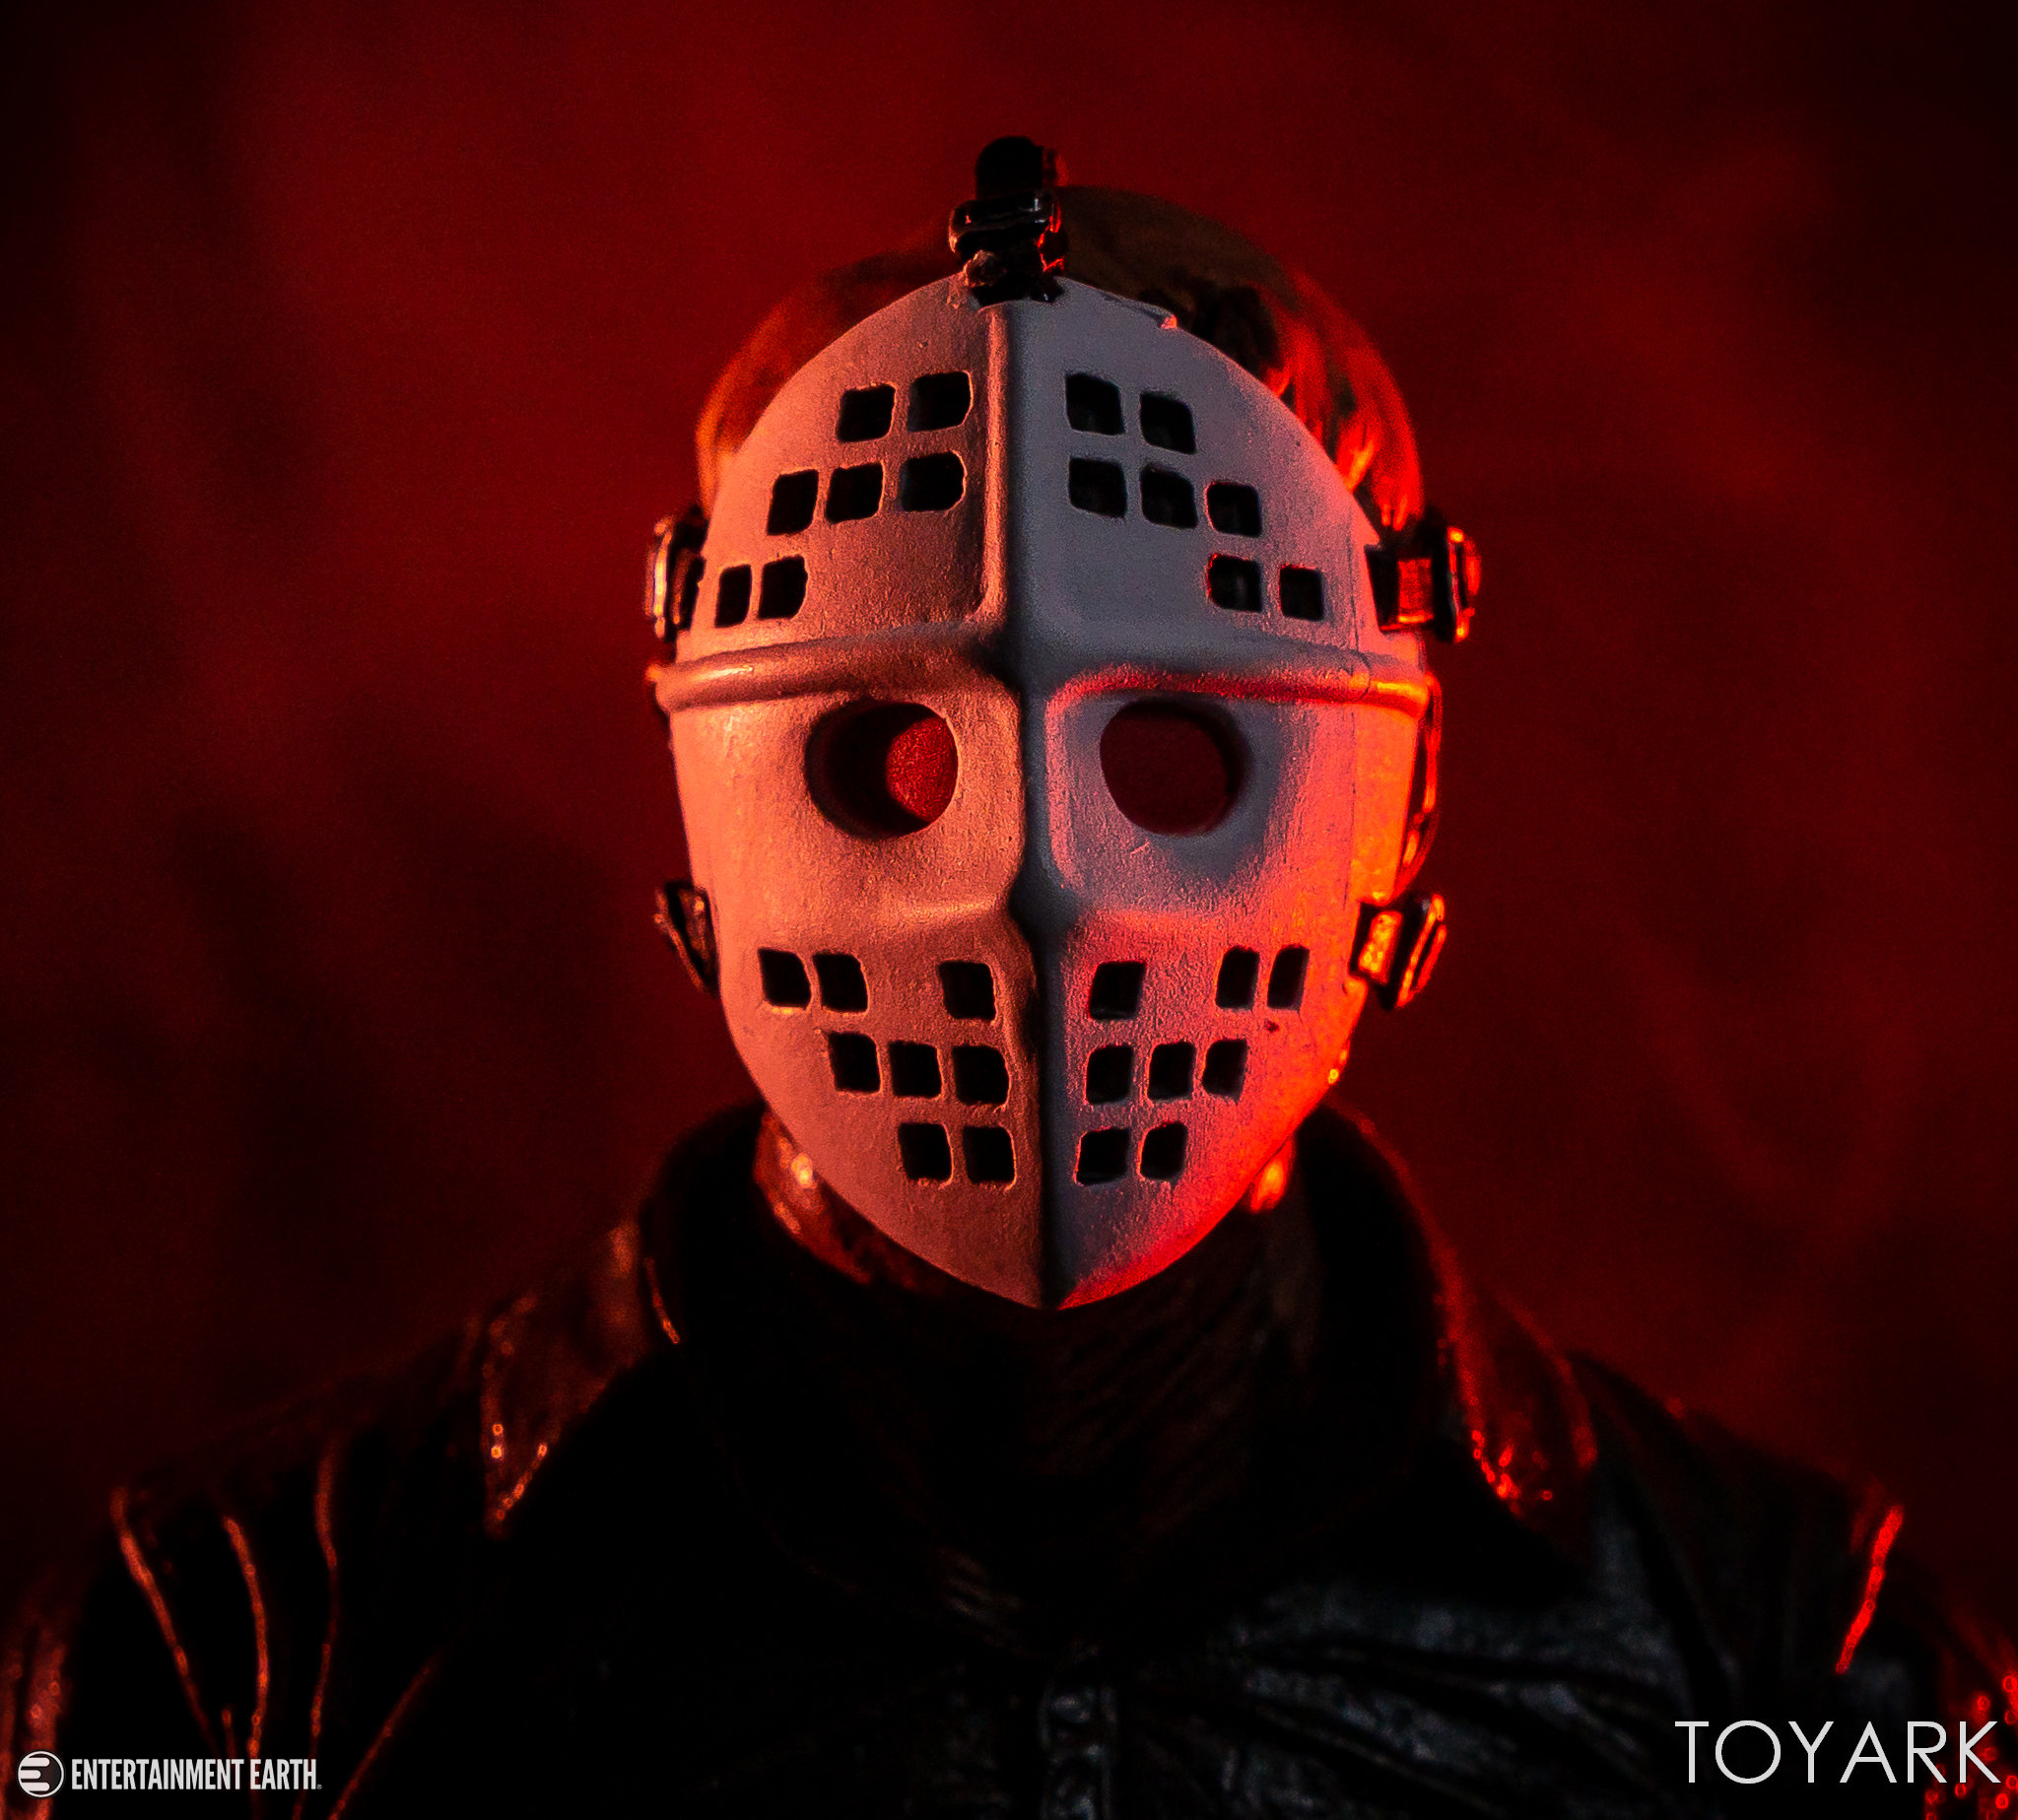 https://news.toyark.com/wp-content/uploads/sites/4/2018/10/NECA-Ultimate-Dream-Jason-047.jpg